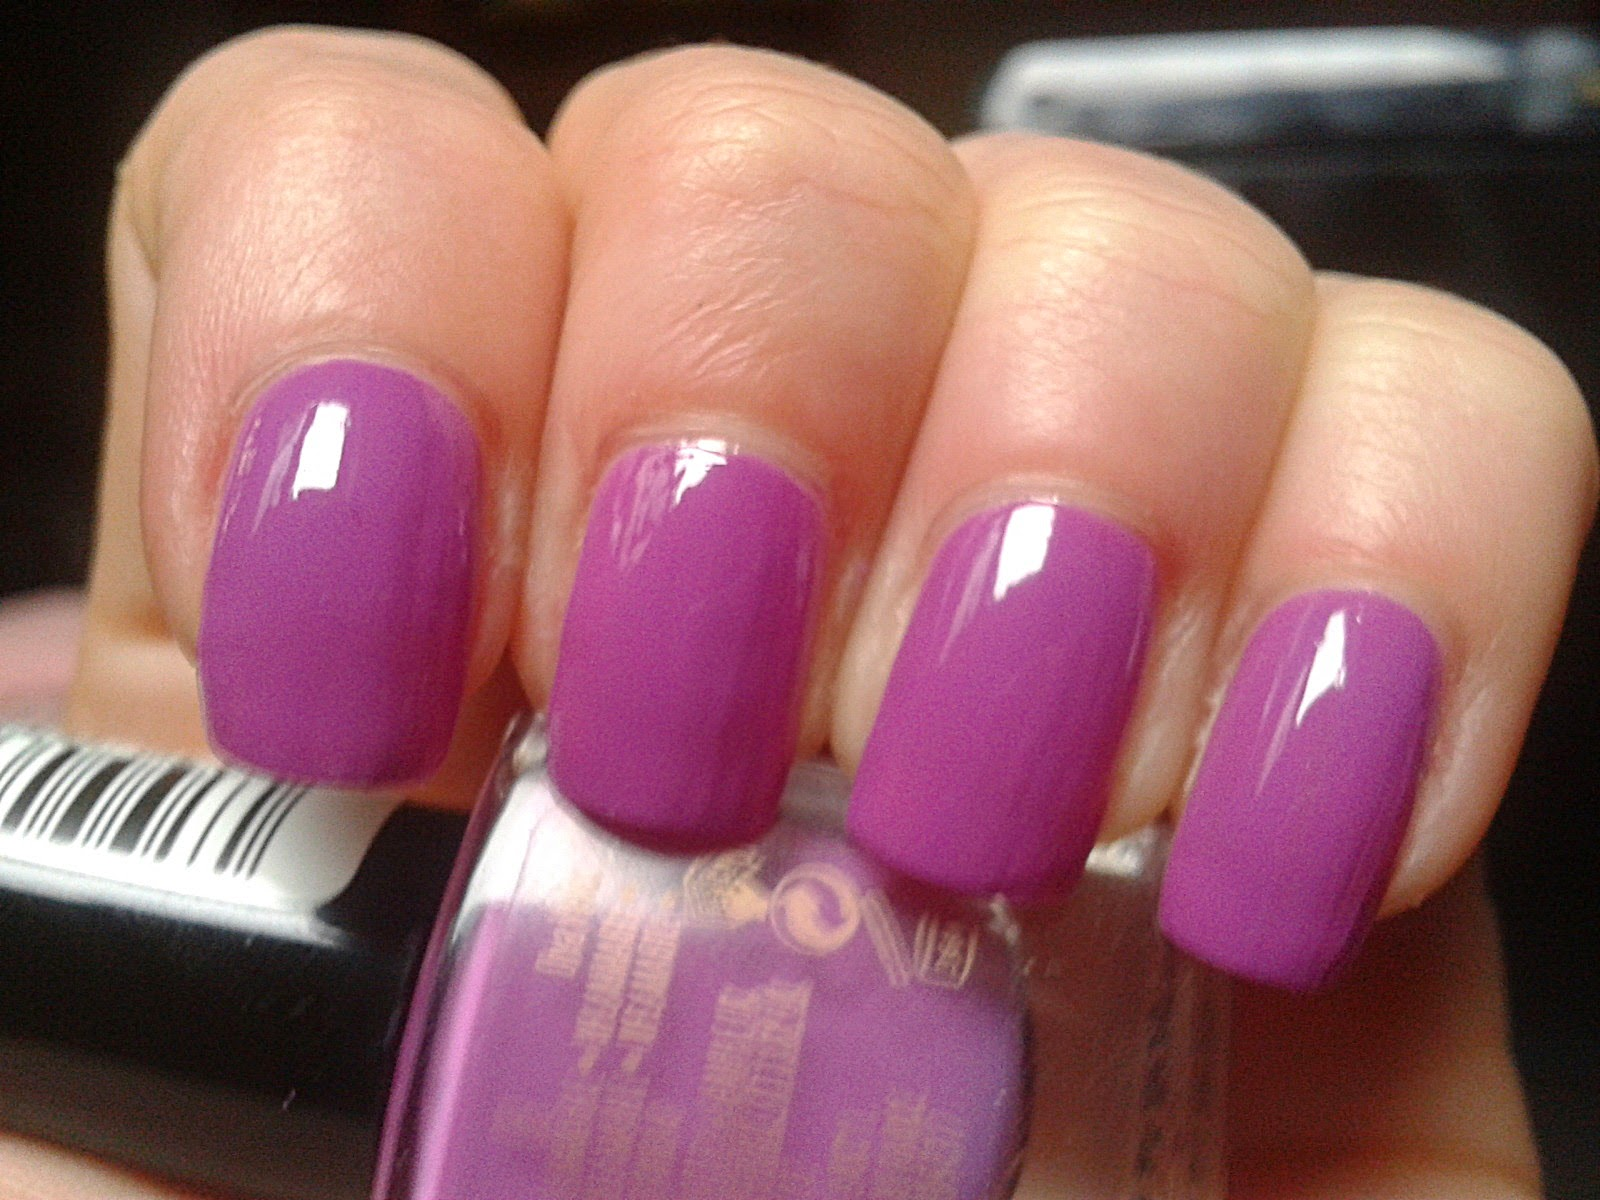 maxfactor-diva-violet-maxeffect-nail-polish-swatch-picture